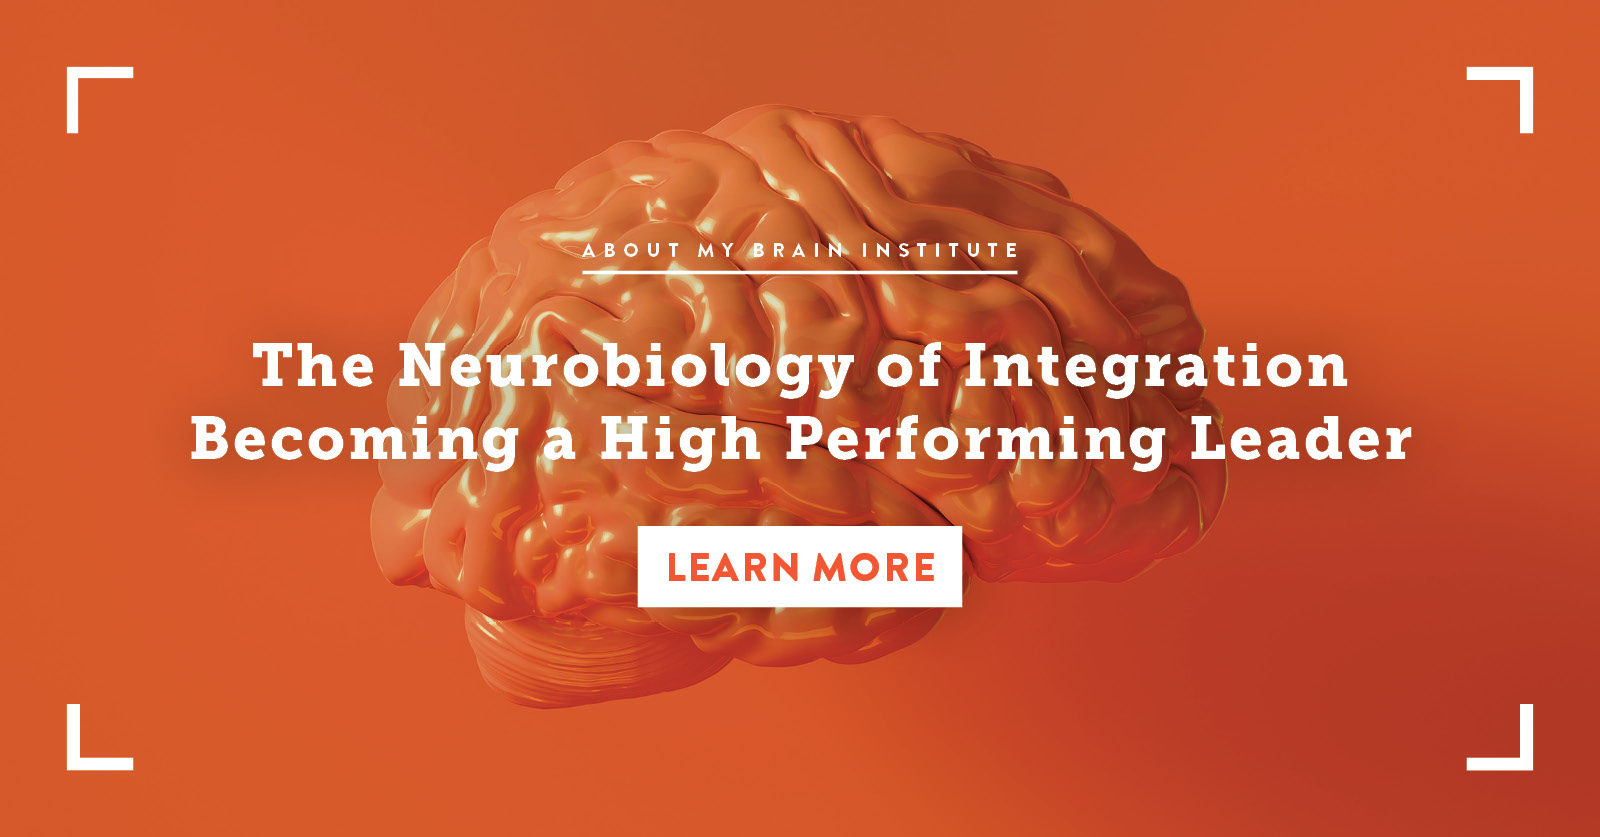 The Neurobiology of Integration - Becoming a High Performing Leader